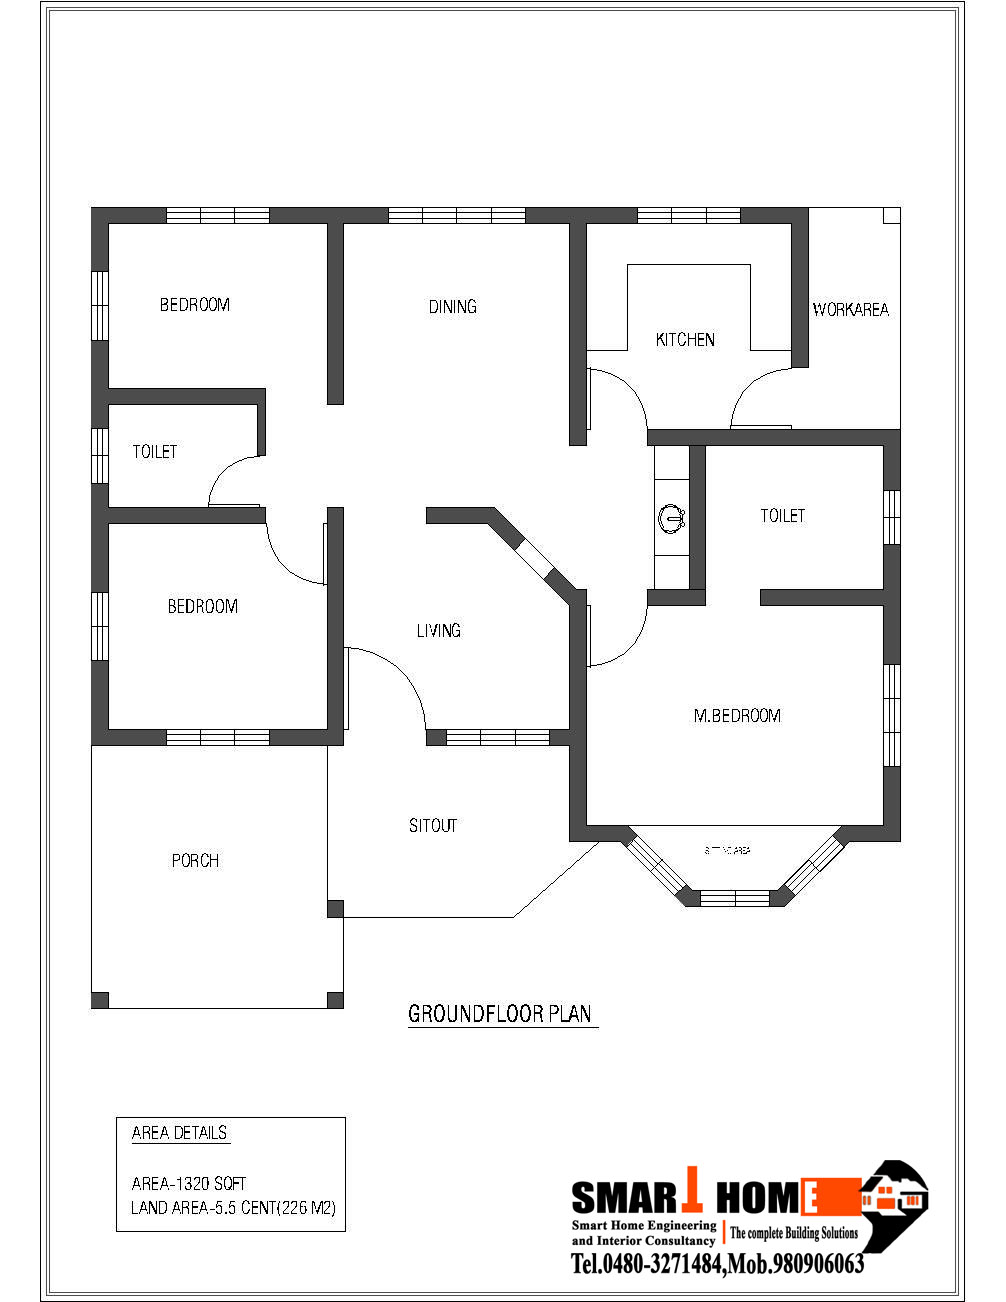 House photos and plans may 2012 - Bedroom home plan ...